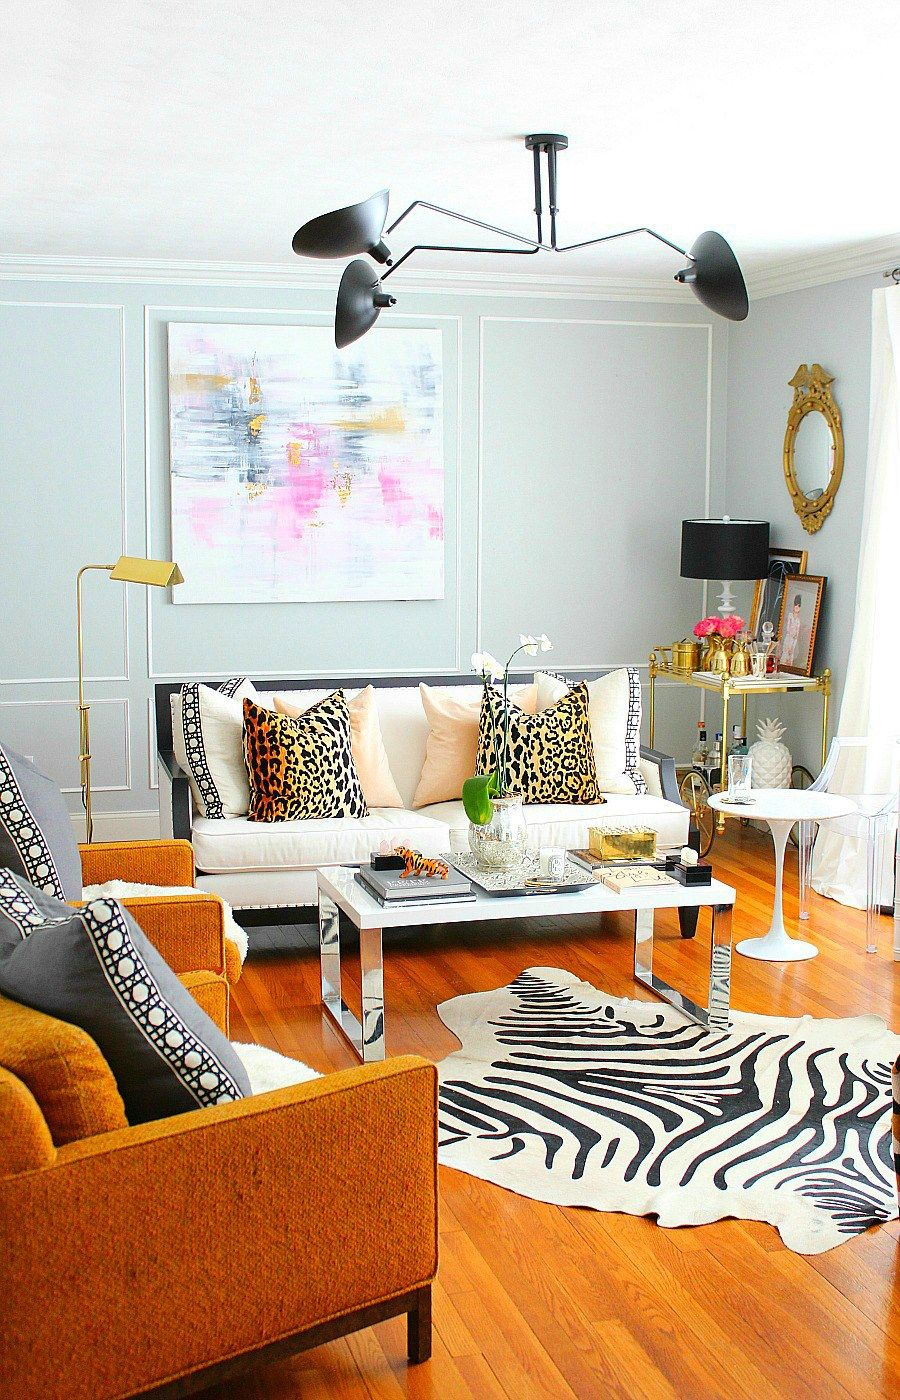 Parisian modern inspired living room makeover with Serge Mouille inspired lighting and wall mouldings,